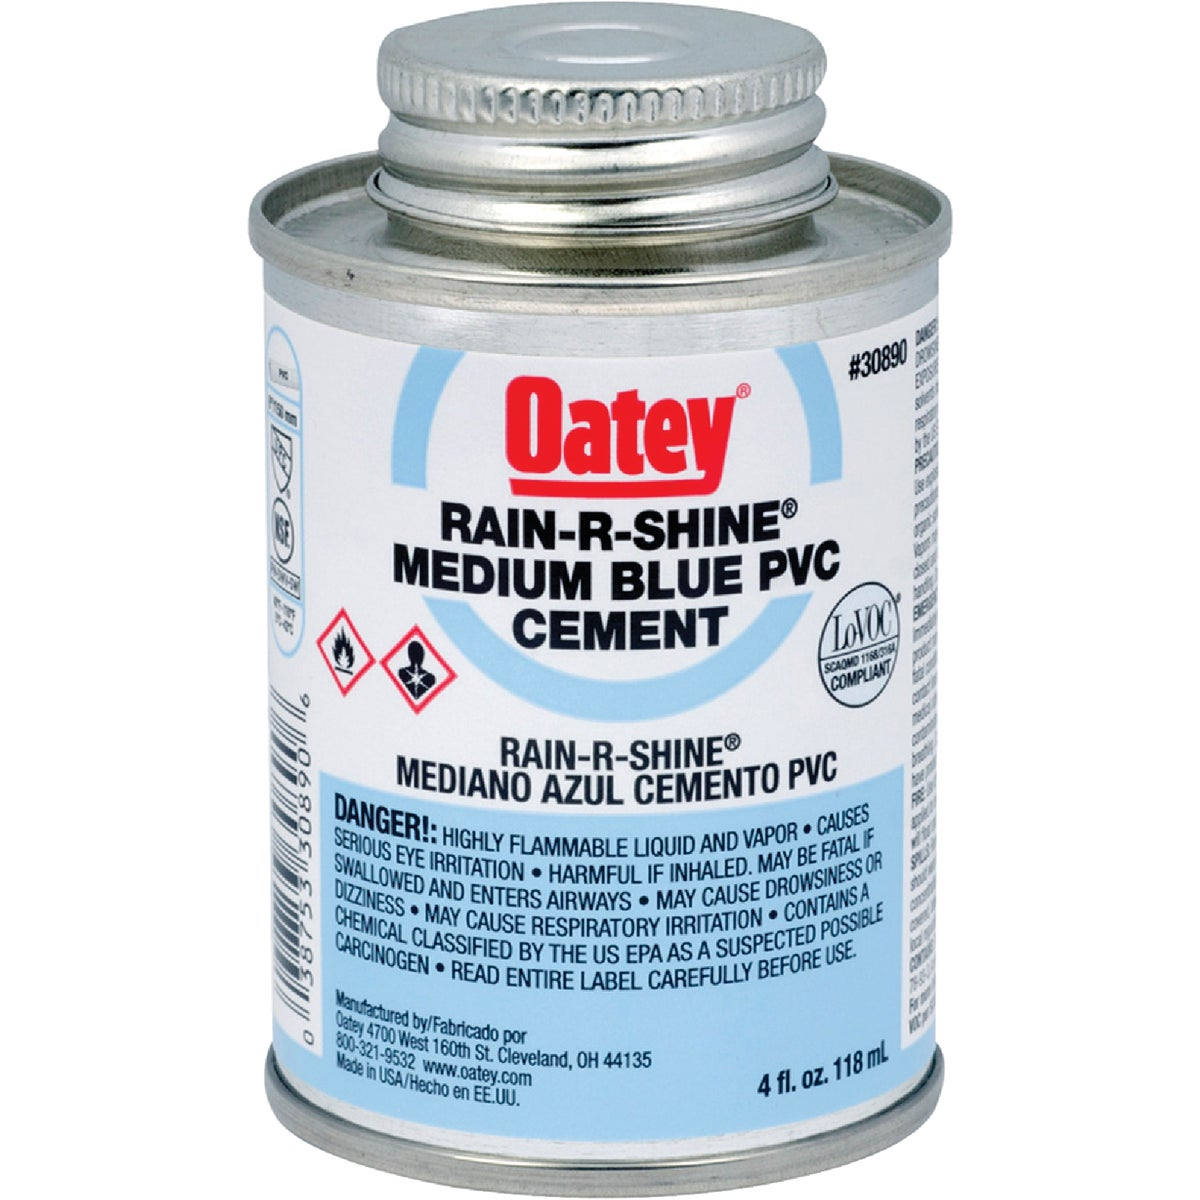 1/4PT WET PVC CEMENT - 30890 by Oatey Scs